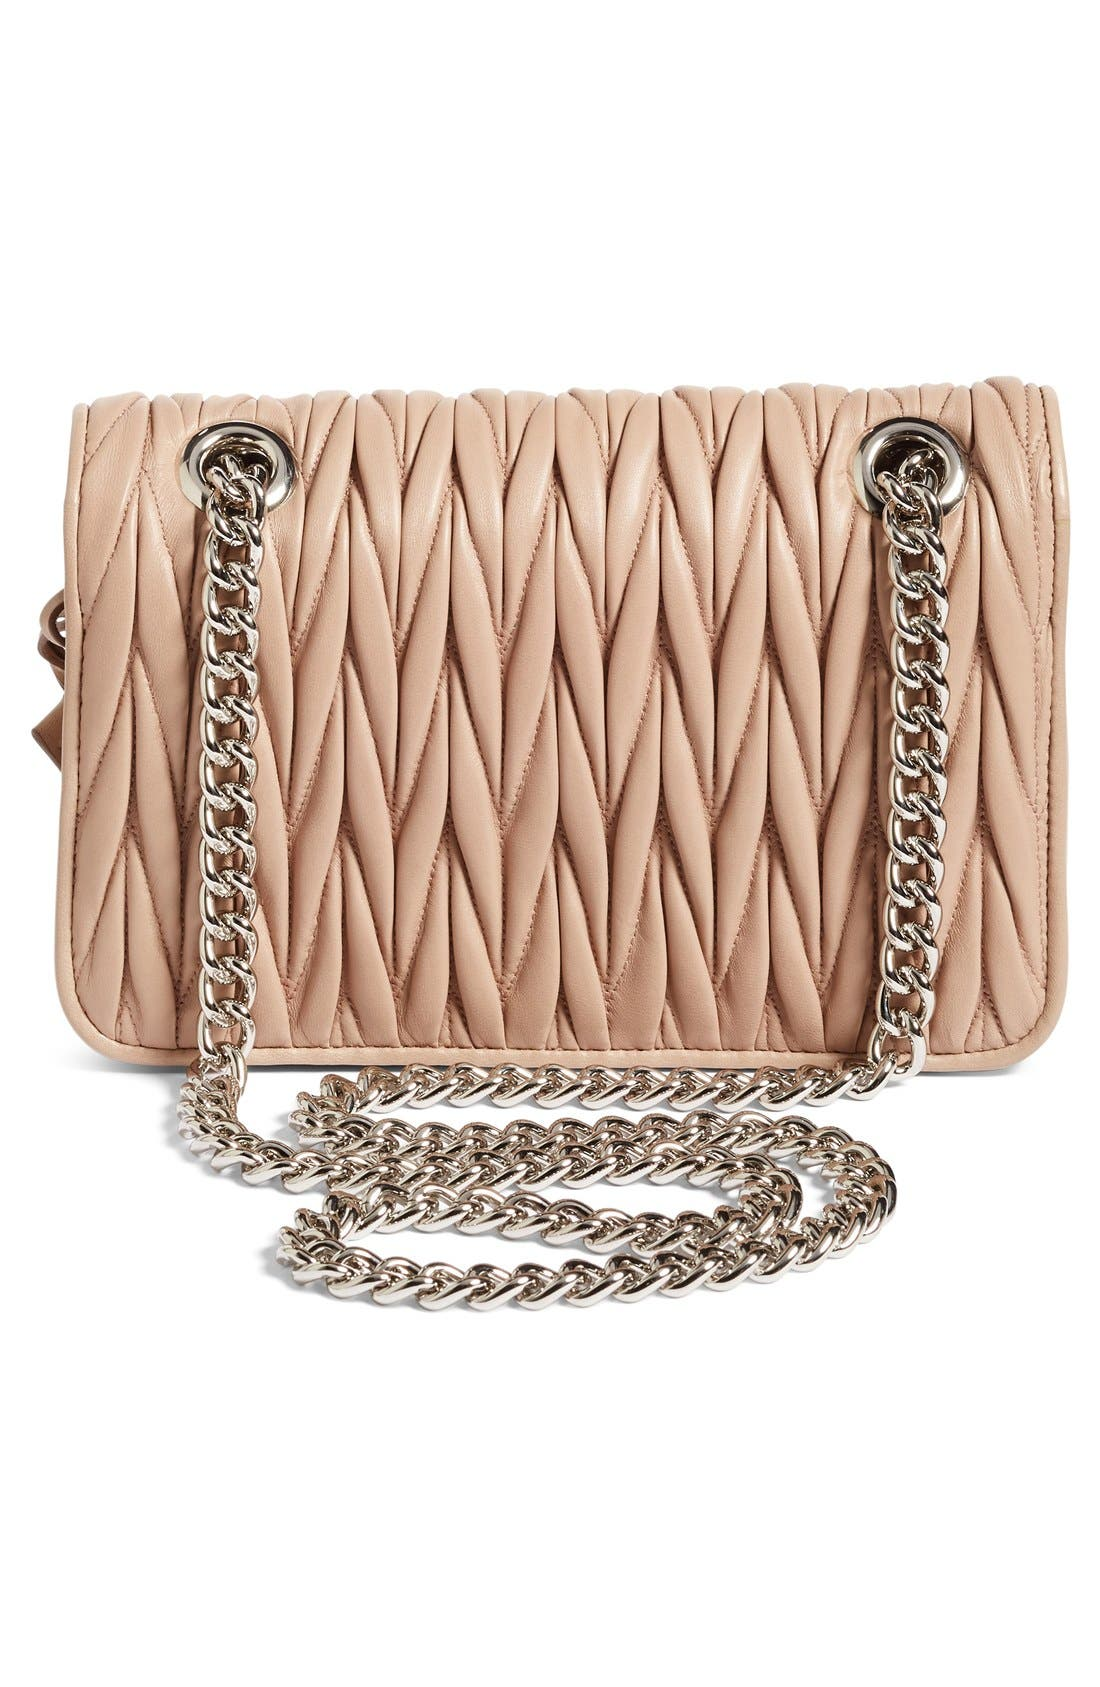 Alternate Image 3  - Miu Miu Club Matelassé Leather Shoulder Bag